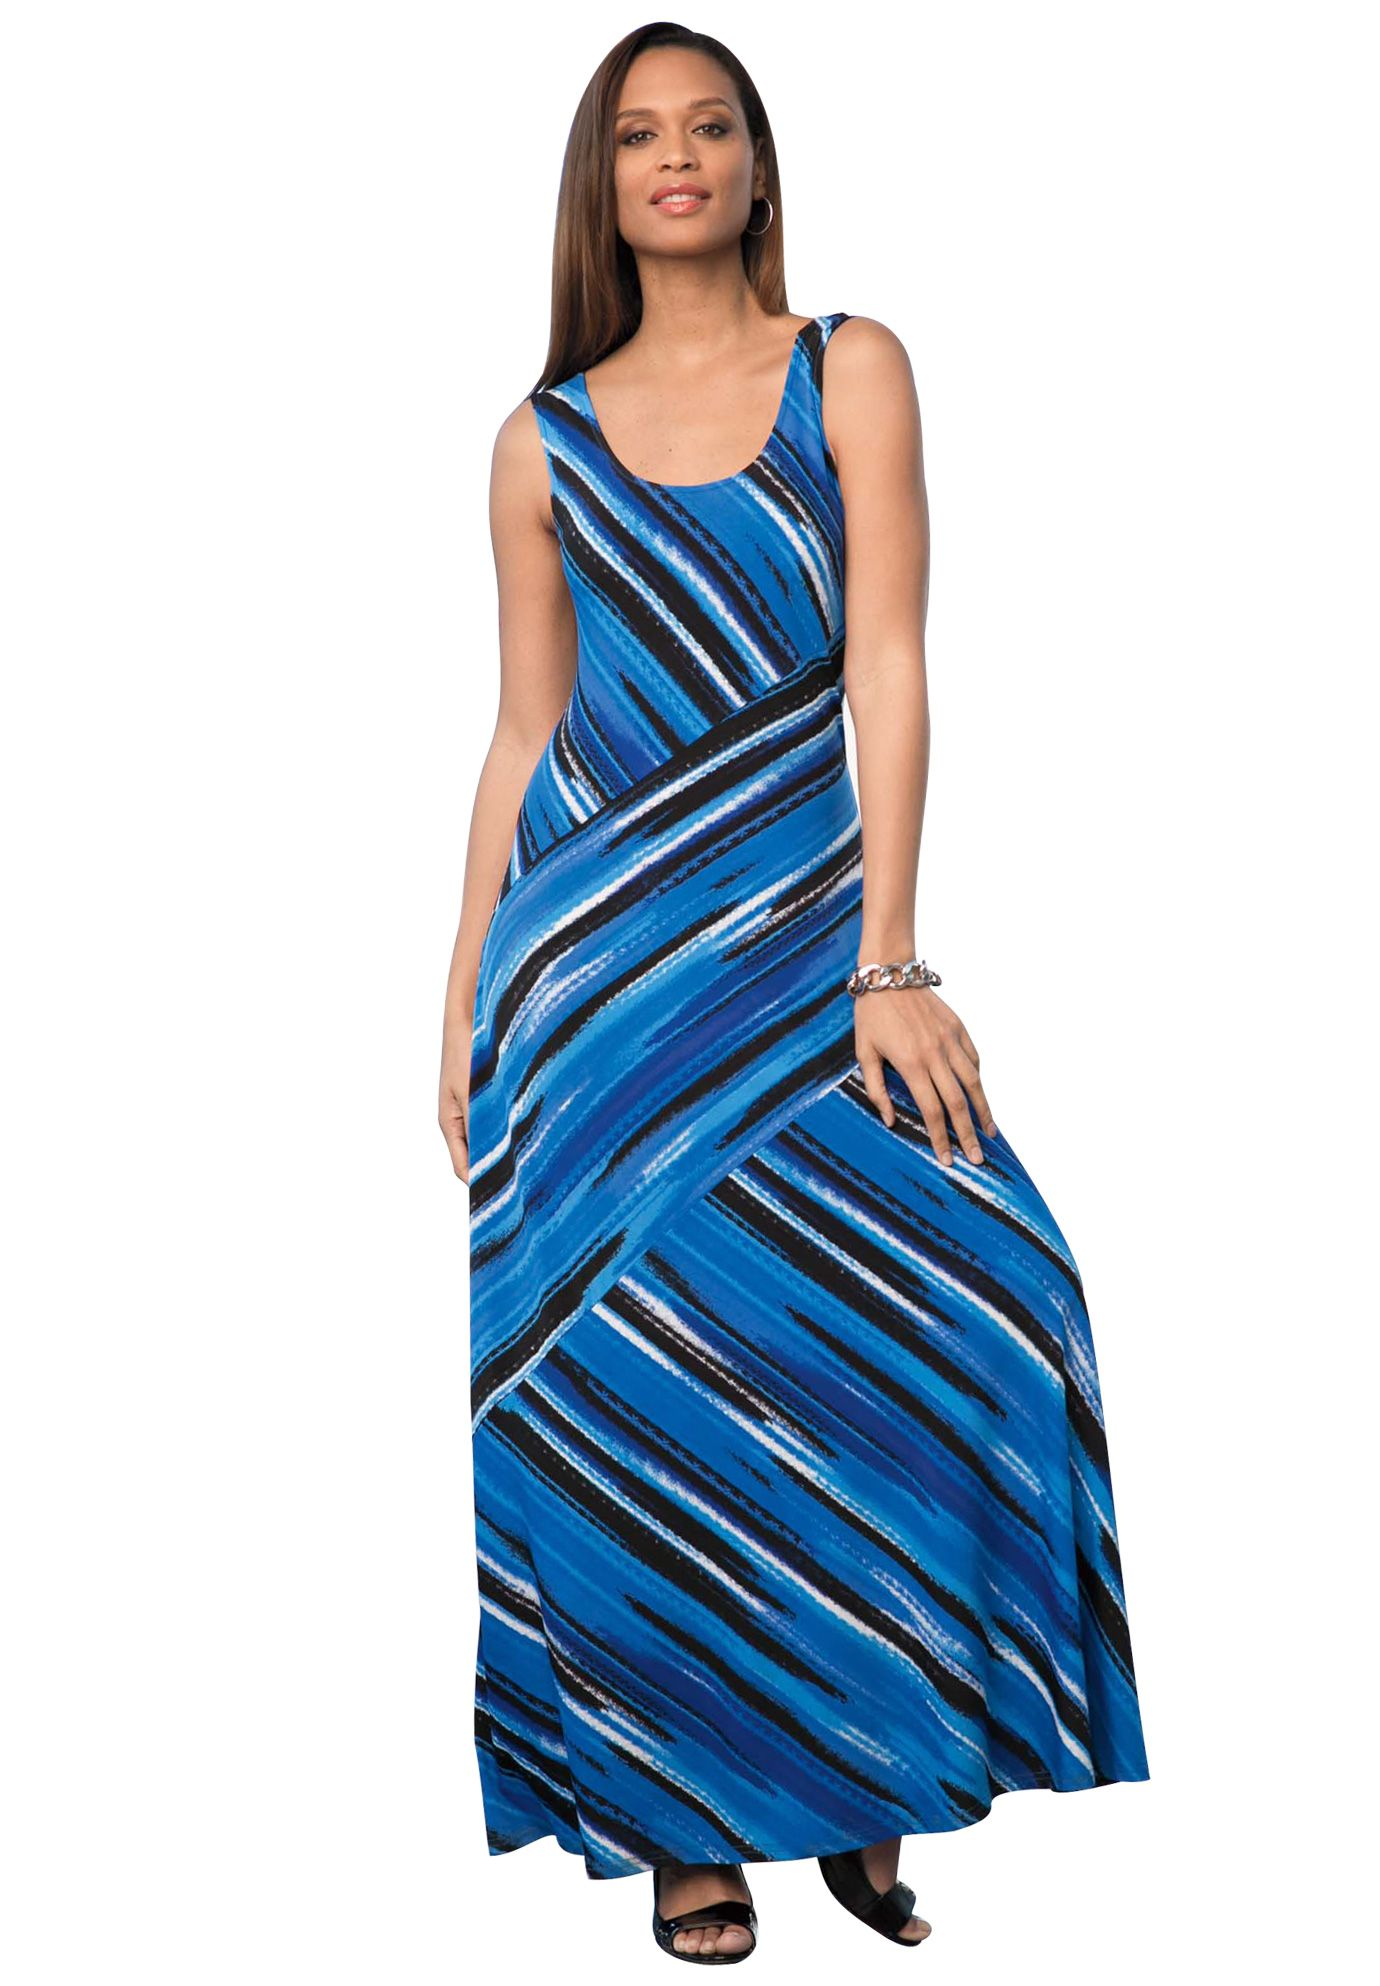 Asymmetrical Maxi Dress from Jessica London! For tall girls like me, I could totally pull this off!  I might also be tempted to shorten it, depending on the fabric. Nice use of stripes... No horizontal, and the placement should detract from my bulges!